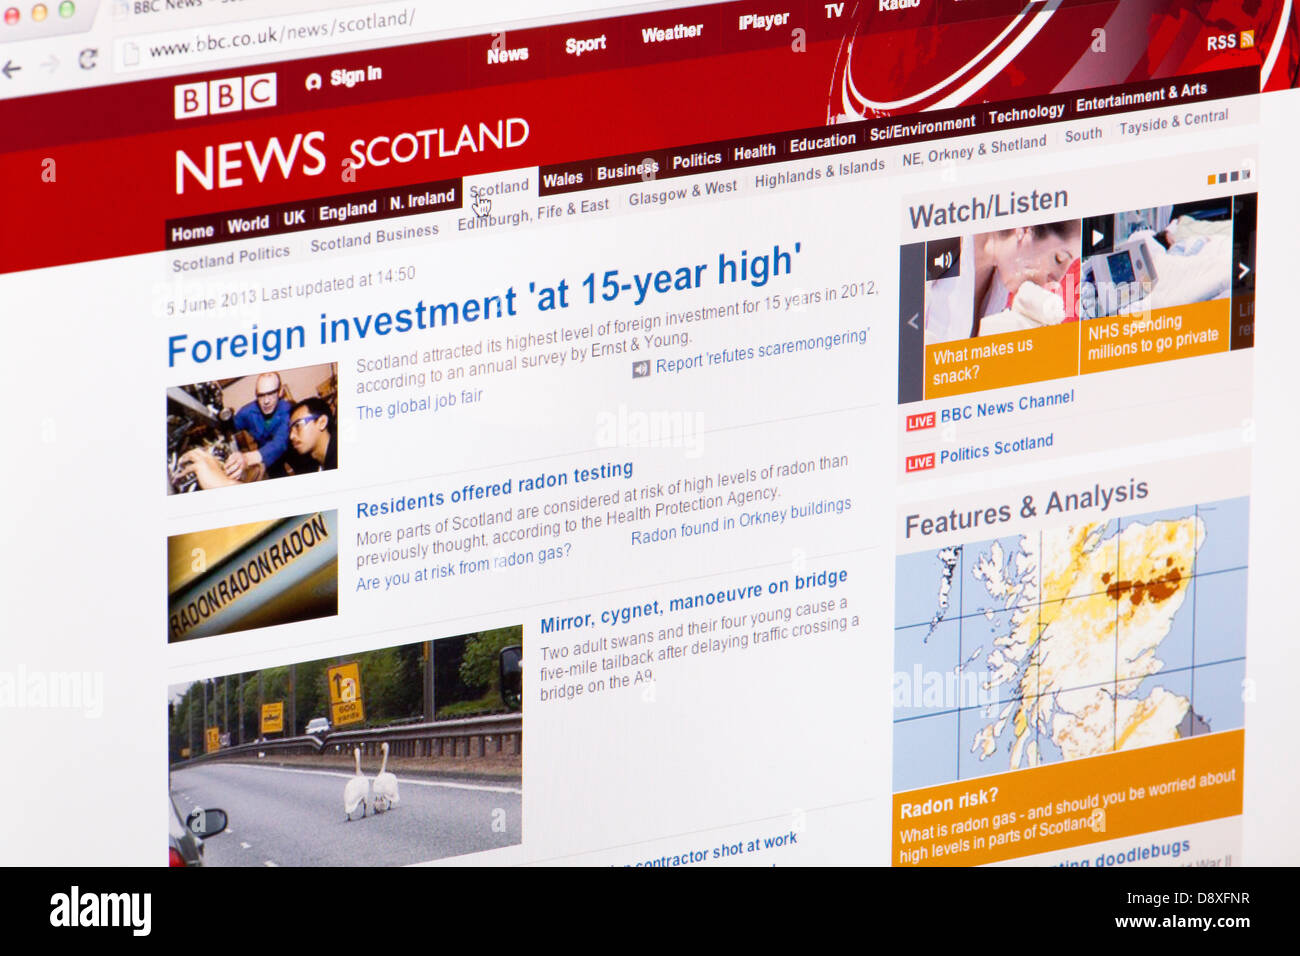 BBC News Scotland home page Website or web page on a laptop screen or computer monitor - Stock Image